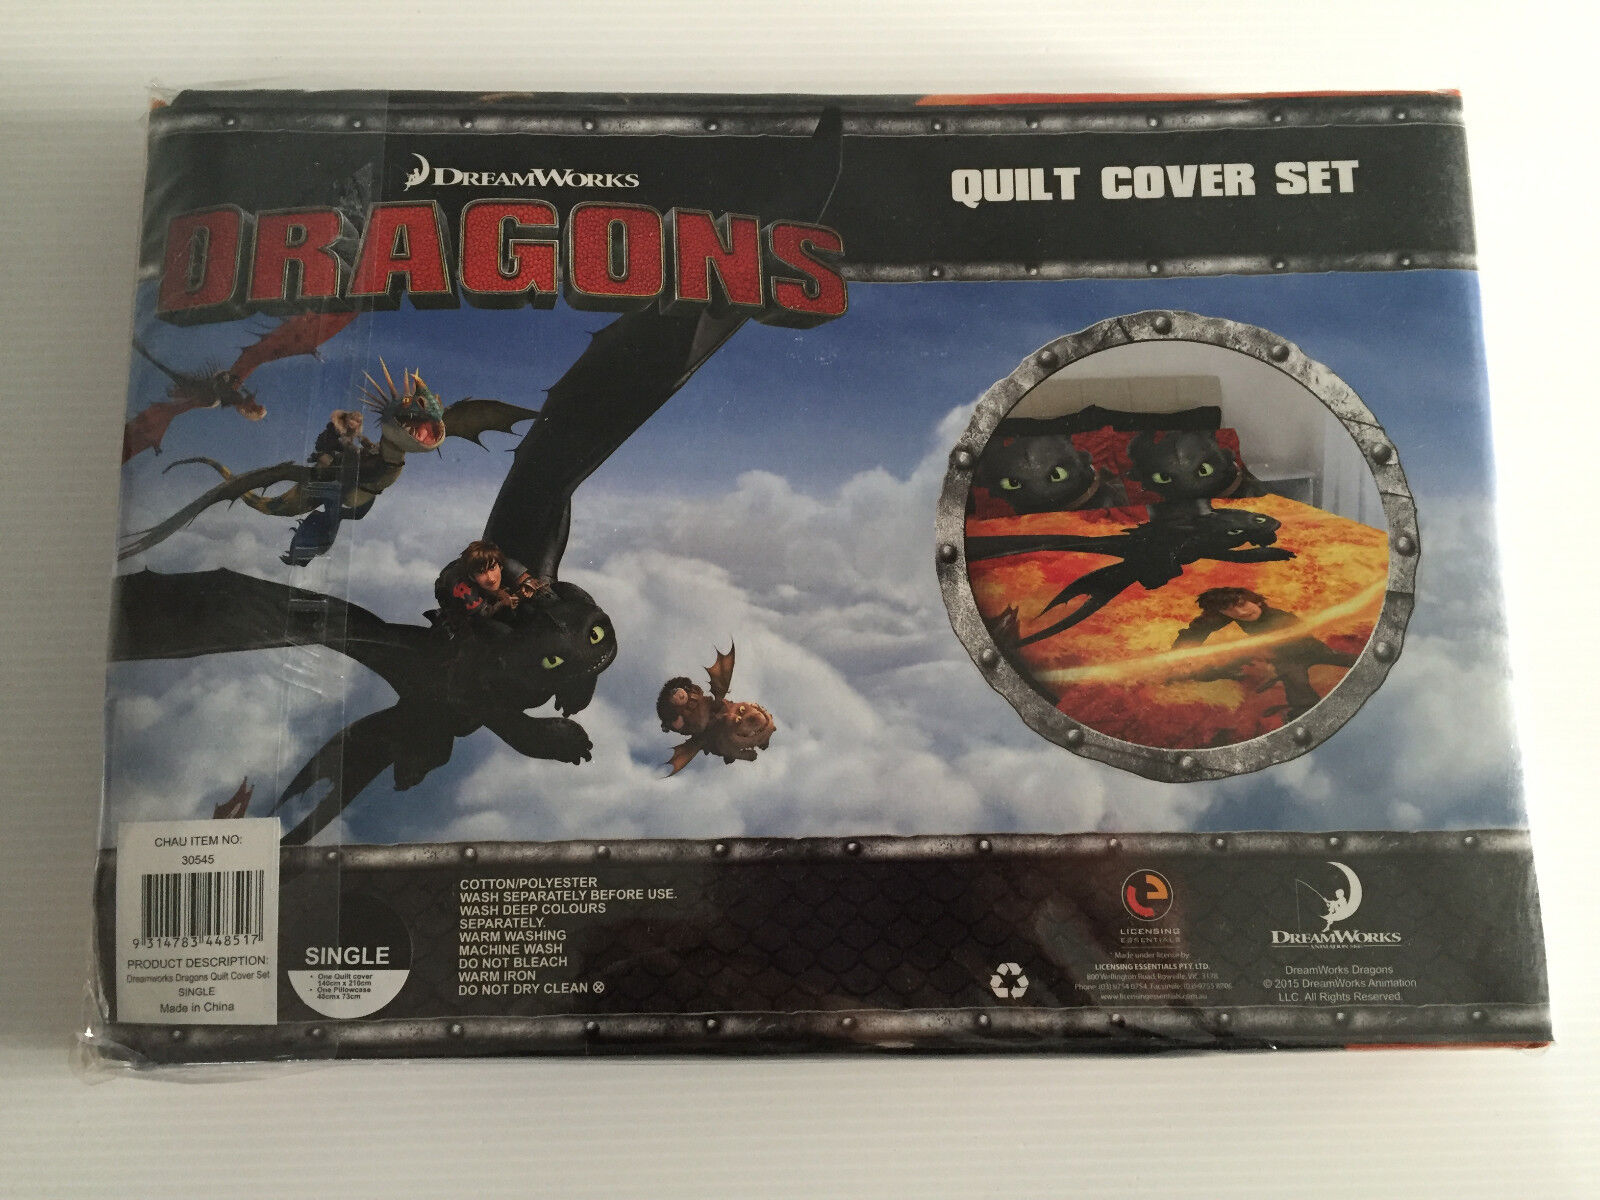 Dreamworks how to train your dragon chau single twin bed quilt picture 1 of 3 ccuart Image collections